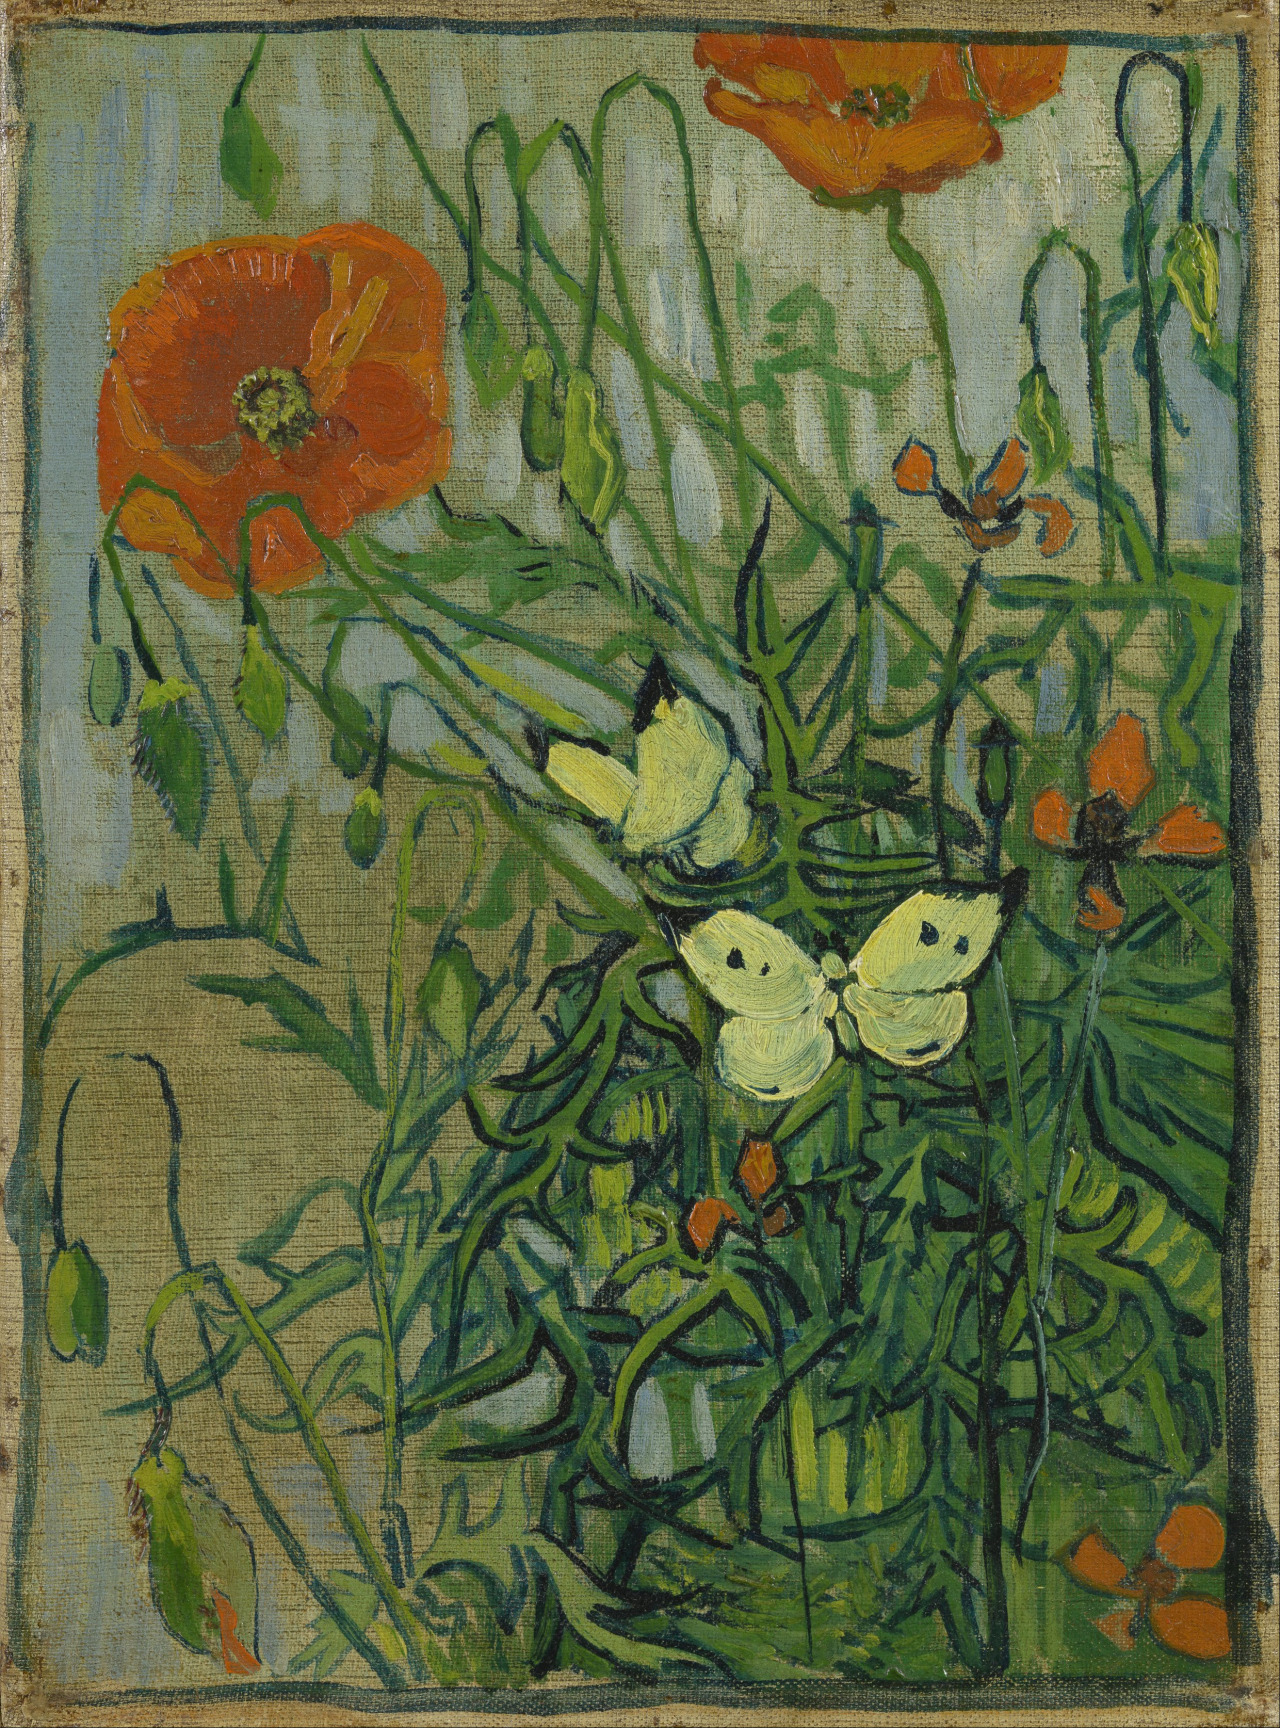 herzogtum-sachsen-weissenfels:  Vincent van Gogh (Dutch, 1853-1890), Poppies and Butterflies, 1890. Oil on canvas, 34.5 x 25.5 cm.